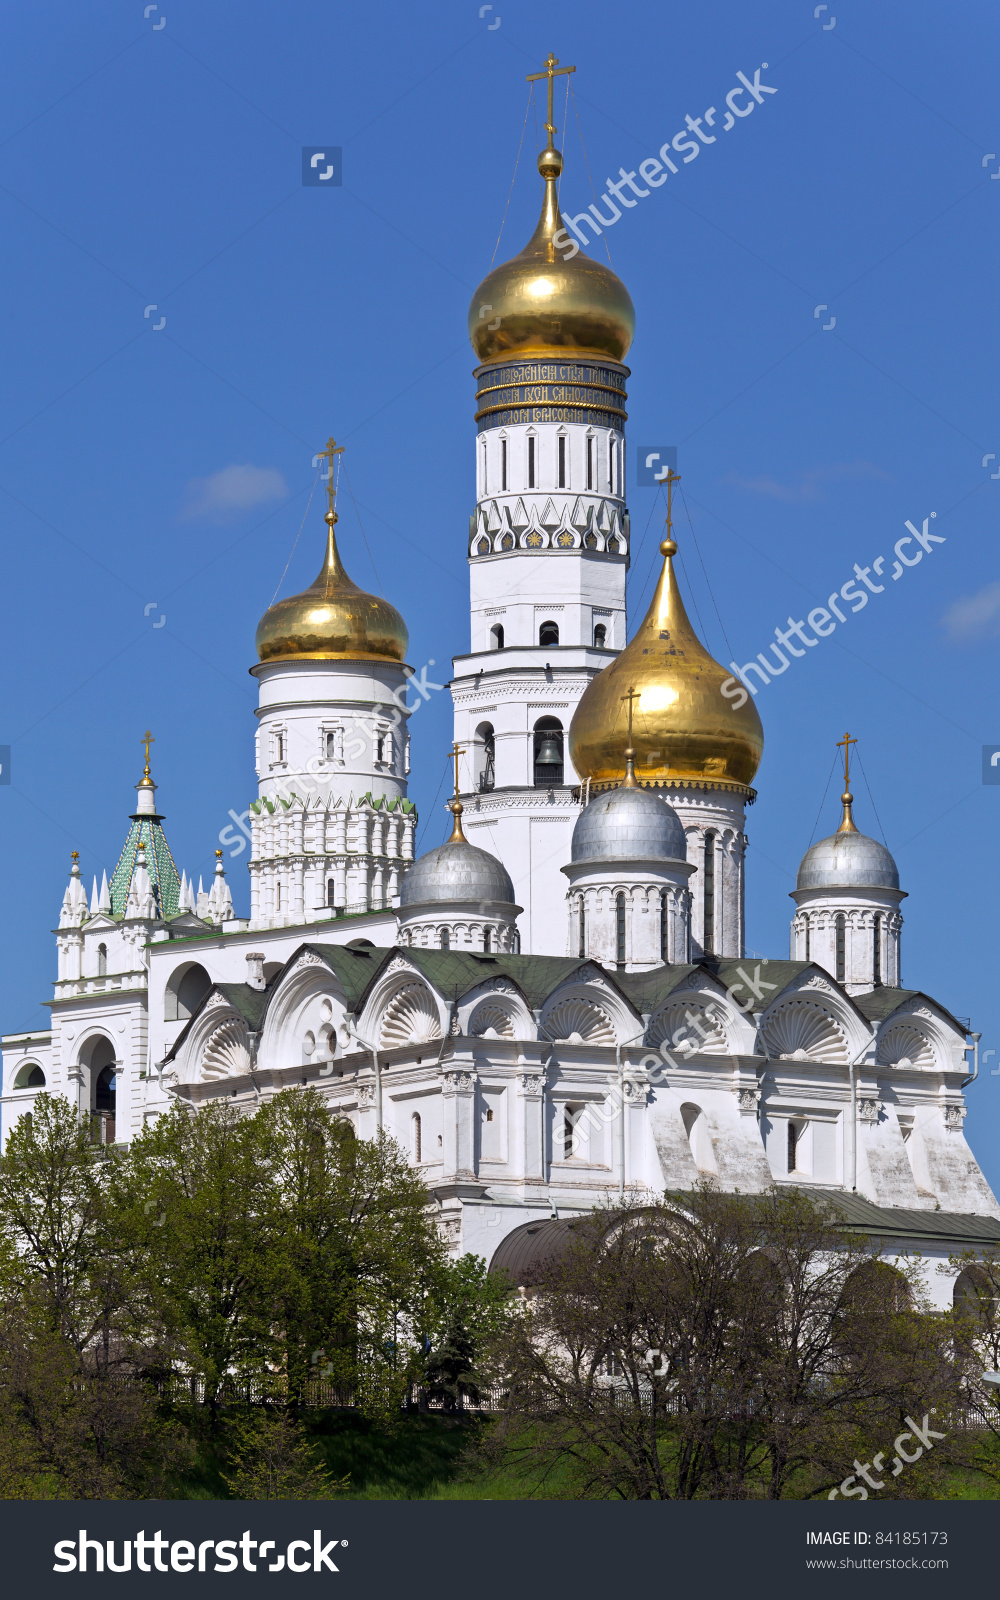 Archangel Cathedral And Ivan The Great Bell In The Moscow Kremlin.